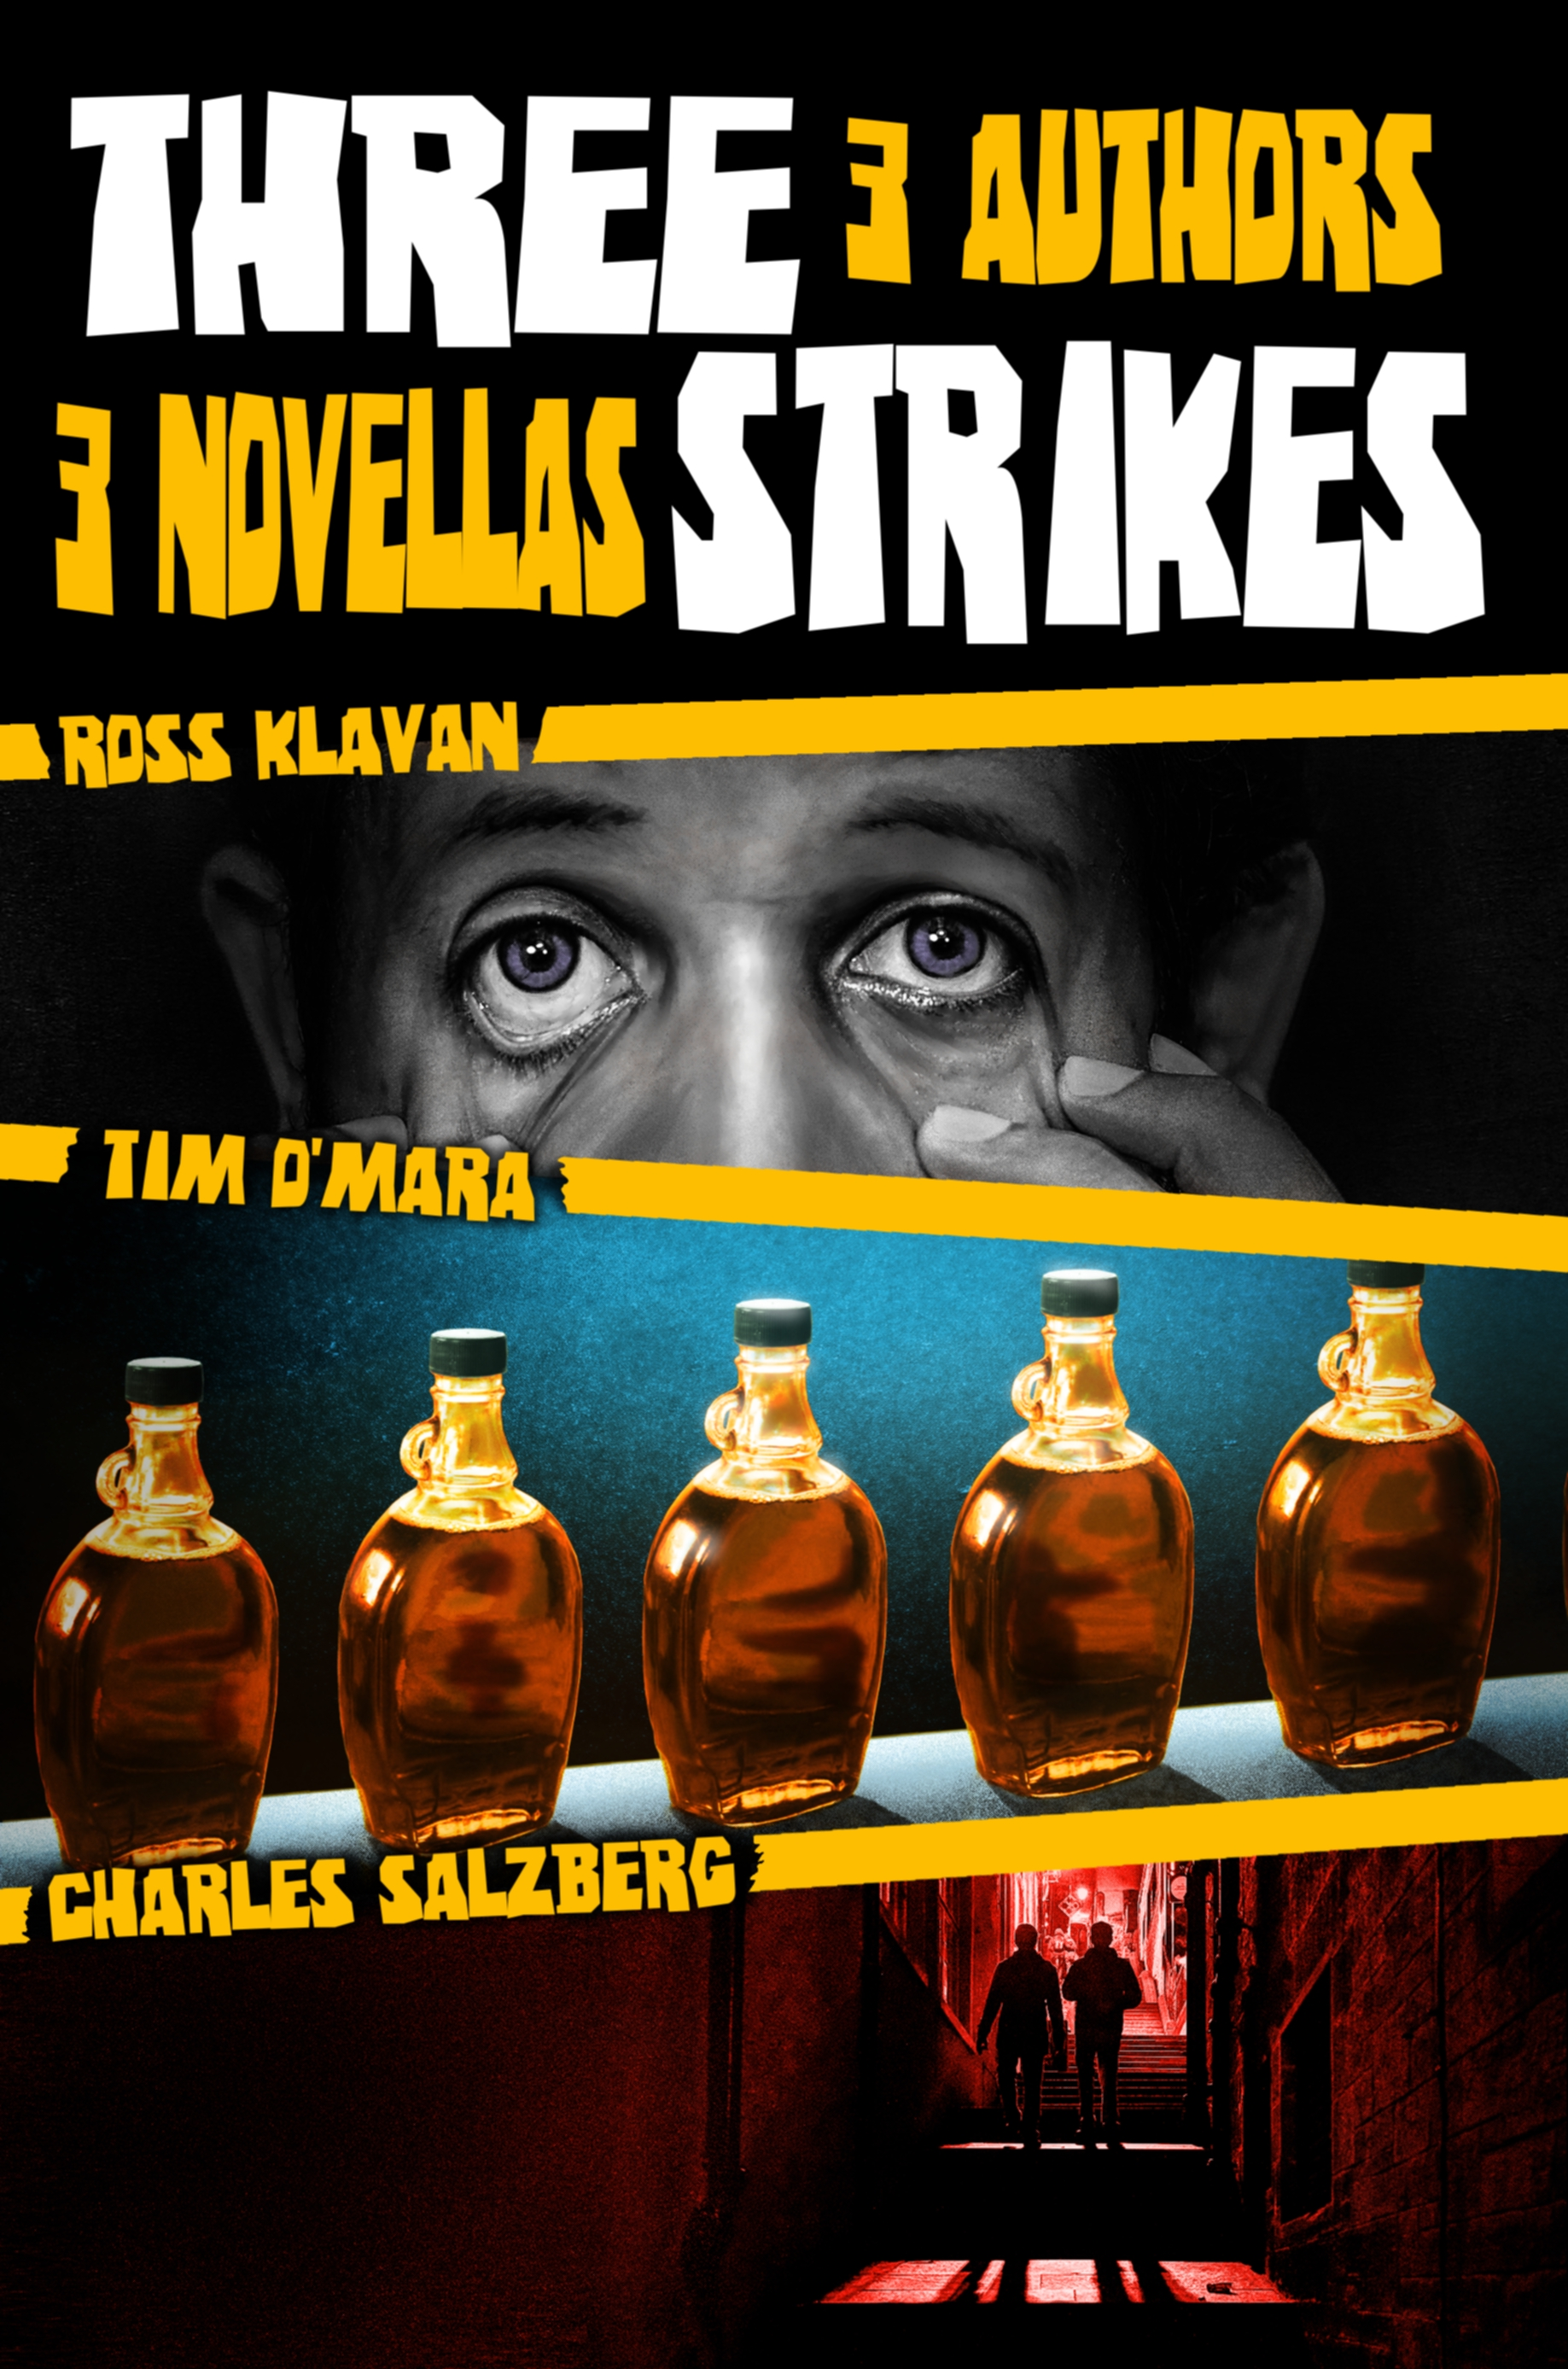 Three Strikes by Ross Klavan, Tim O'Mara, and Charles Salzberg